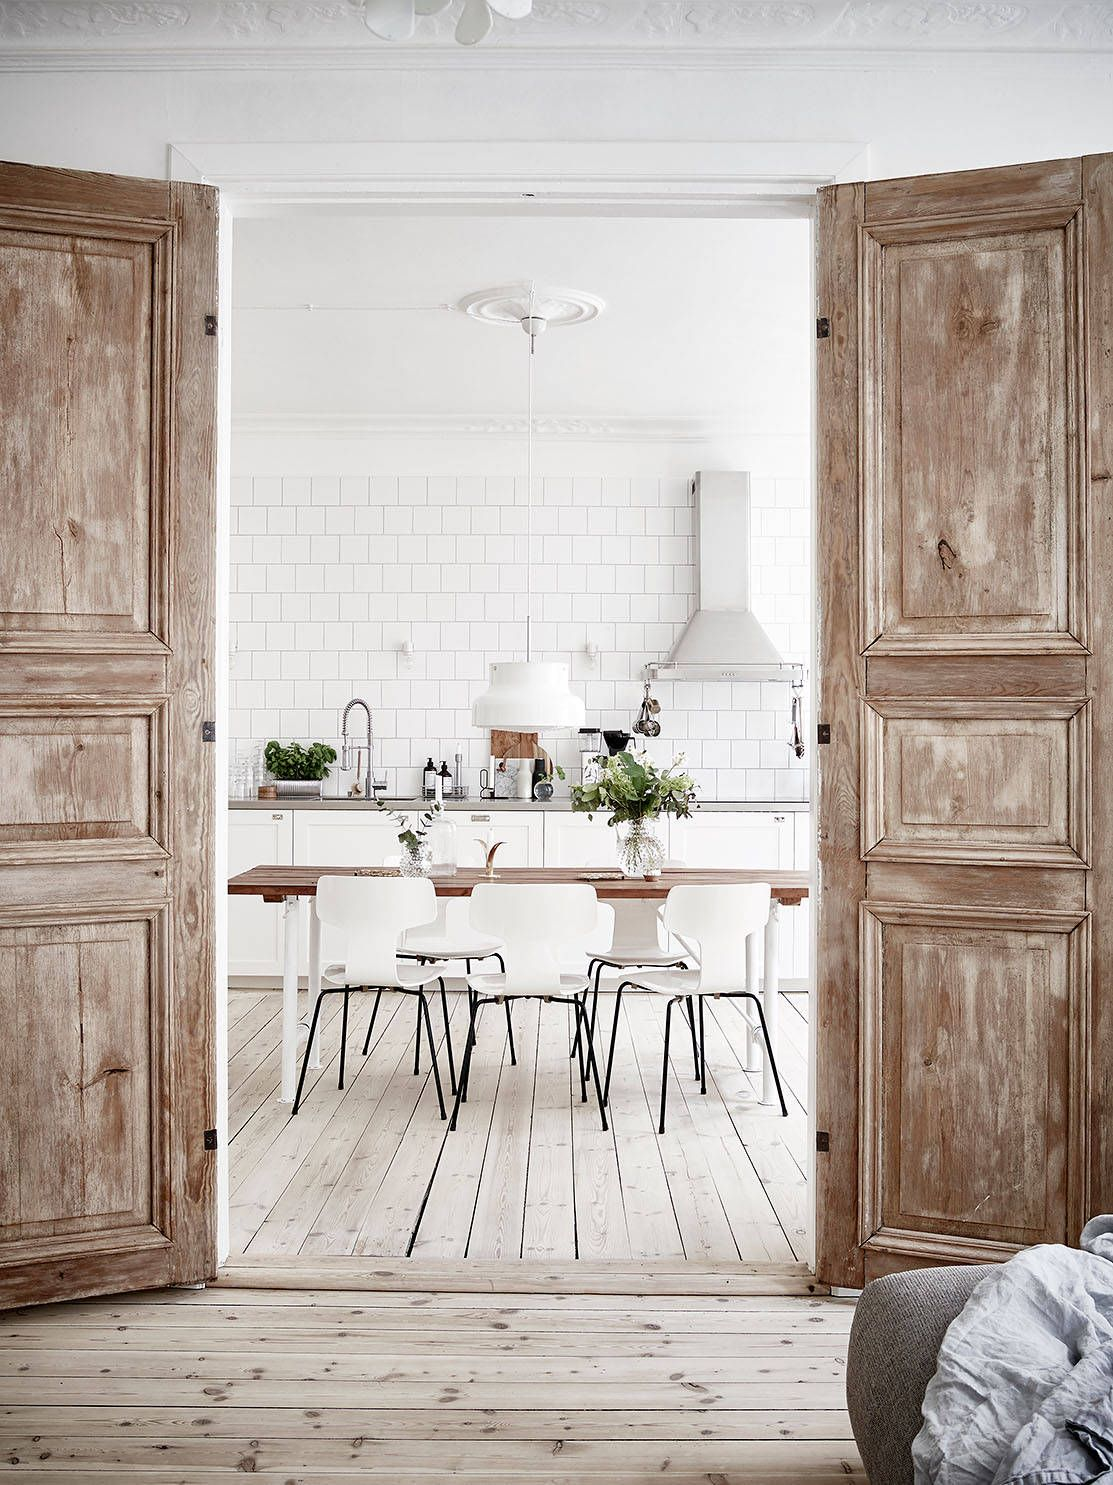 Pin By William Susanna Wicks On Home Ideas 2016 Pinterest Wood